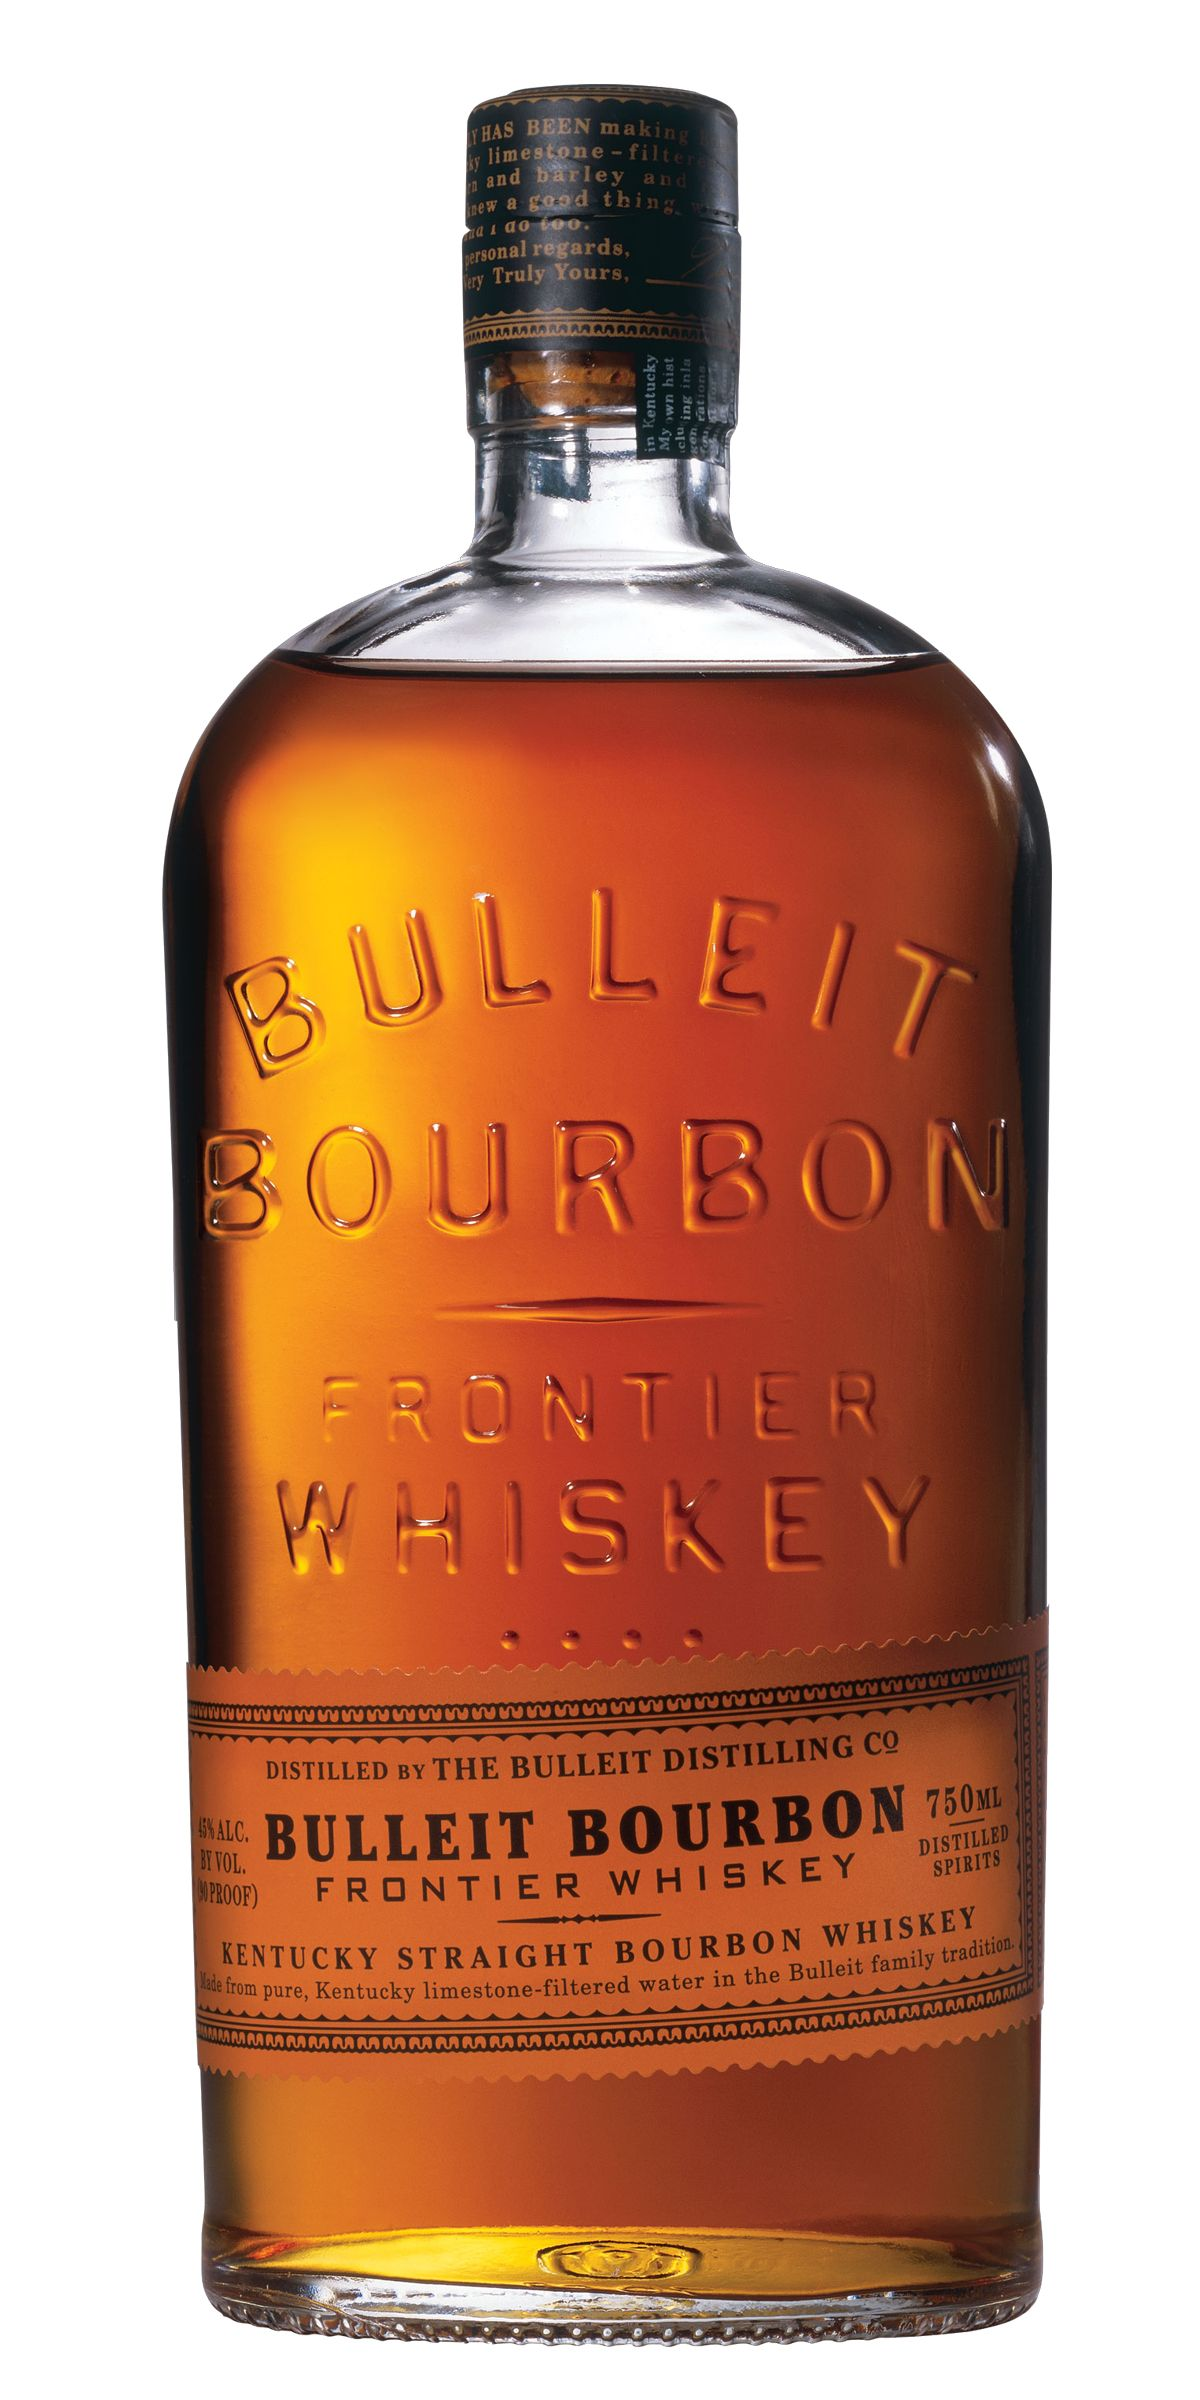 3 Where Seagram S Plays Current Competition In Bar That Seagram S Competes With Ex Pbr Bulleit Bourbon Kentucky Straight Bourbon Whiskey Bourbon Whiskey